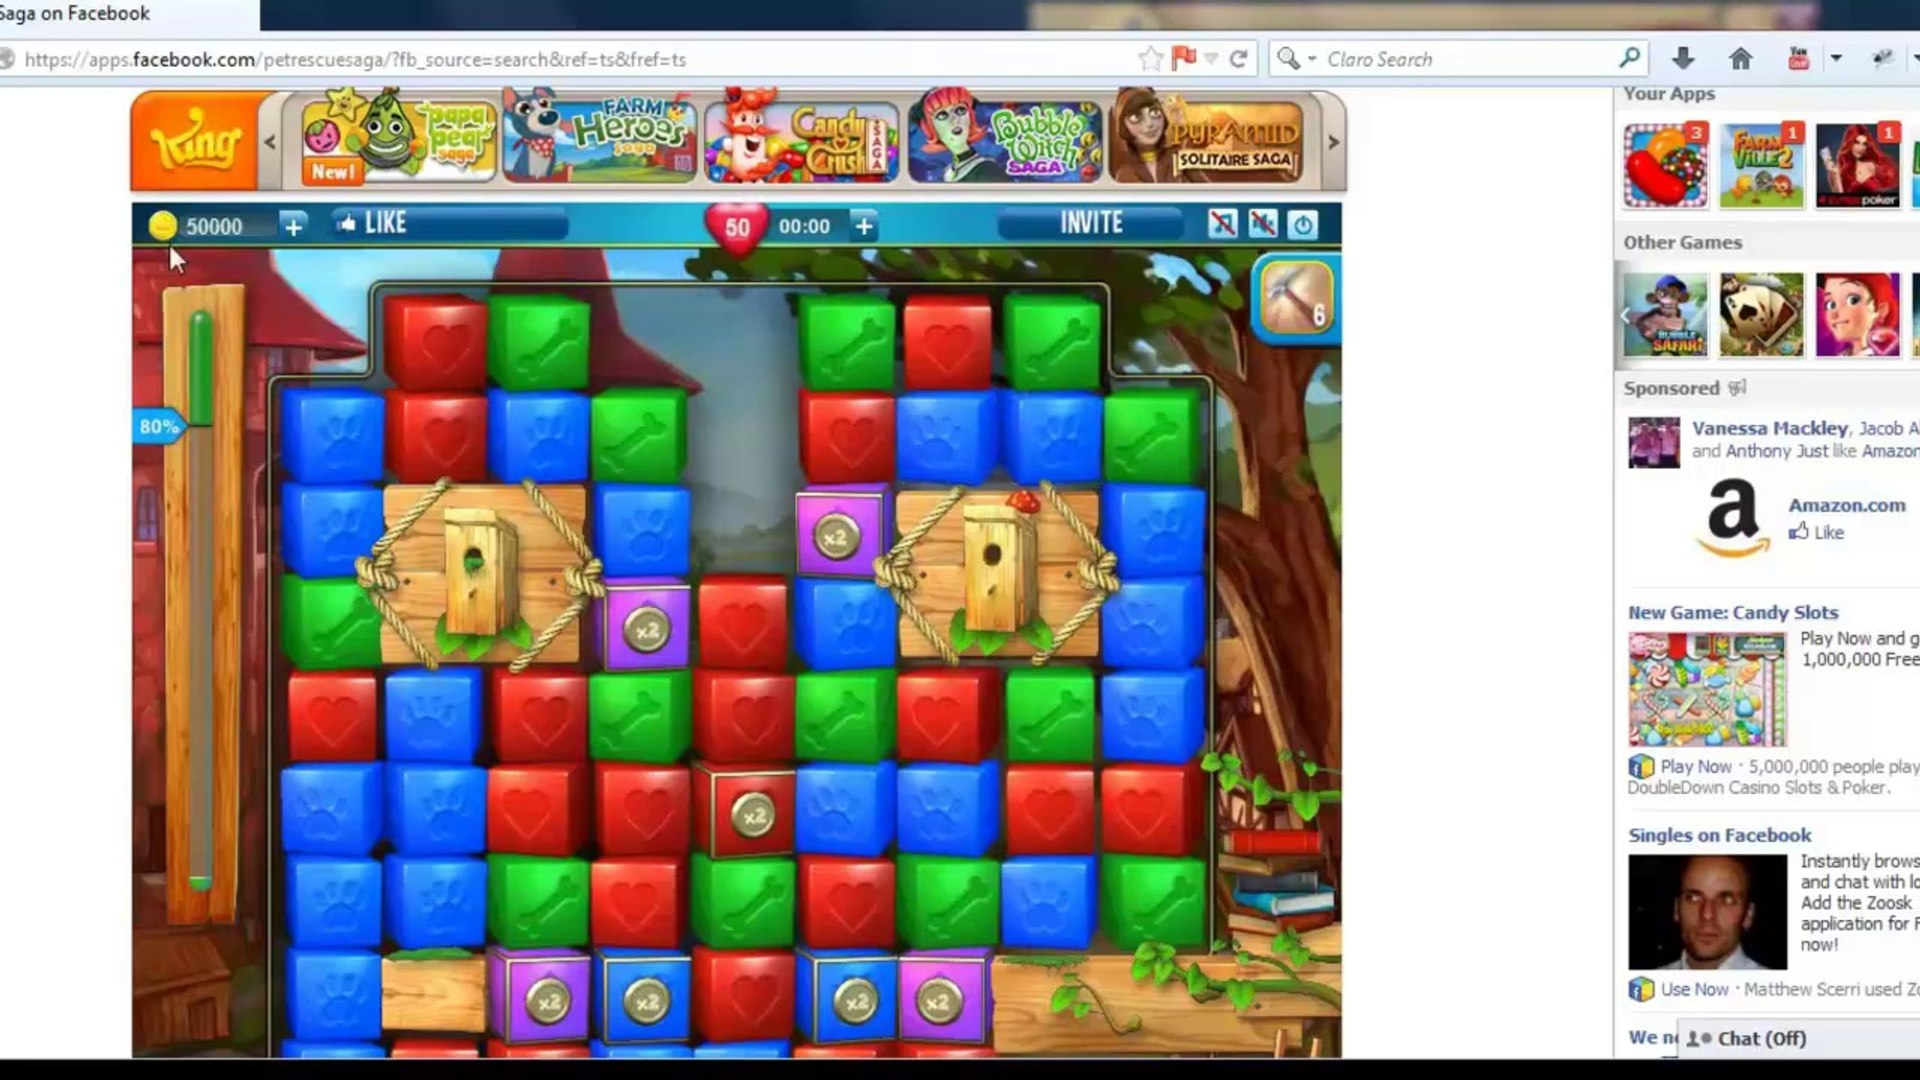 Pet Rescue Saga Cheats Coins Lives Hack Tool - Free Download With Proof